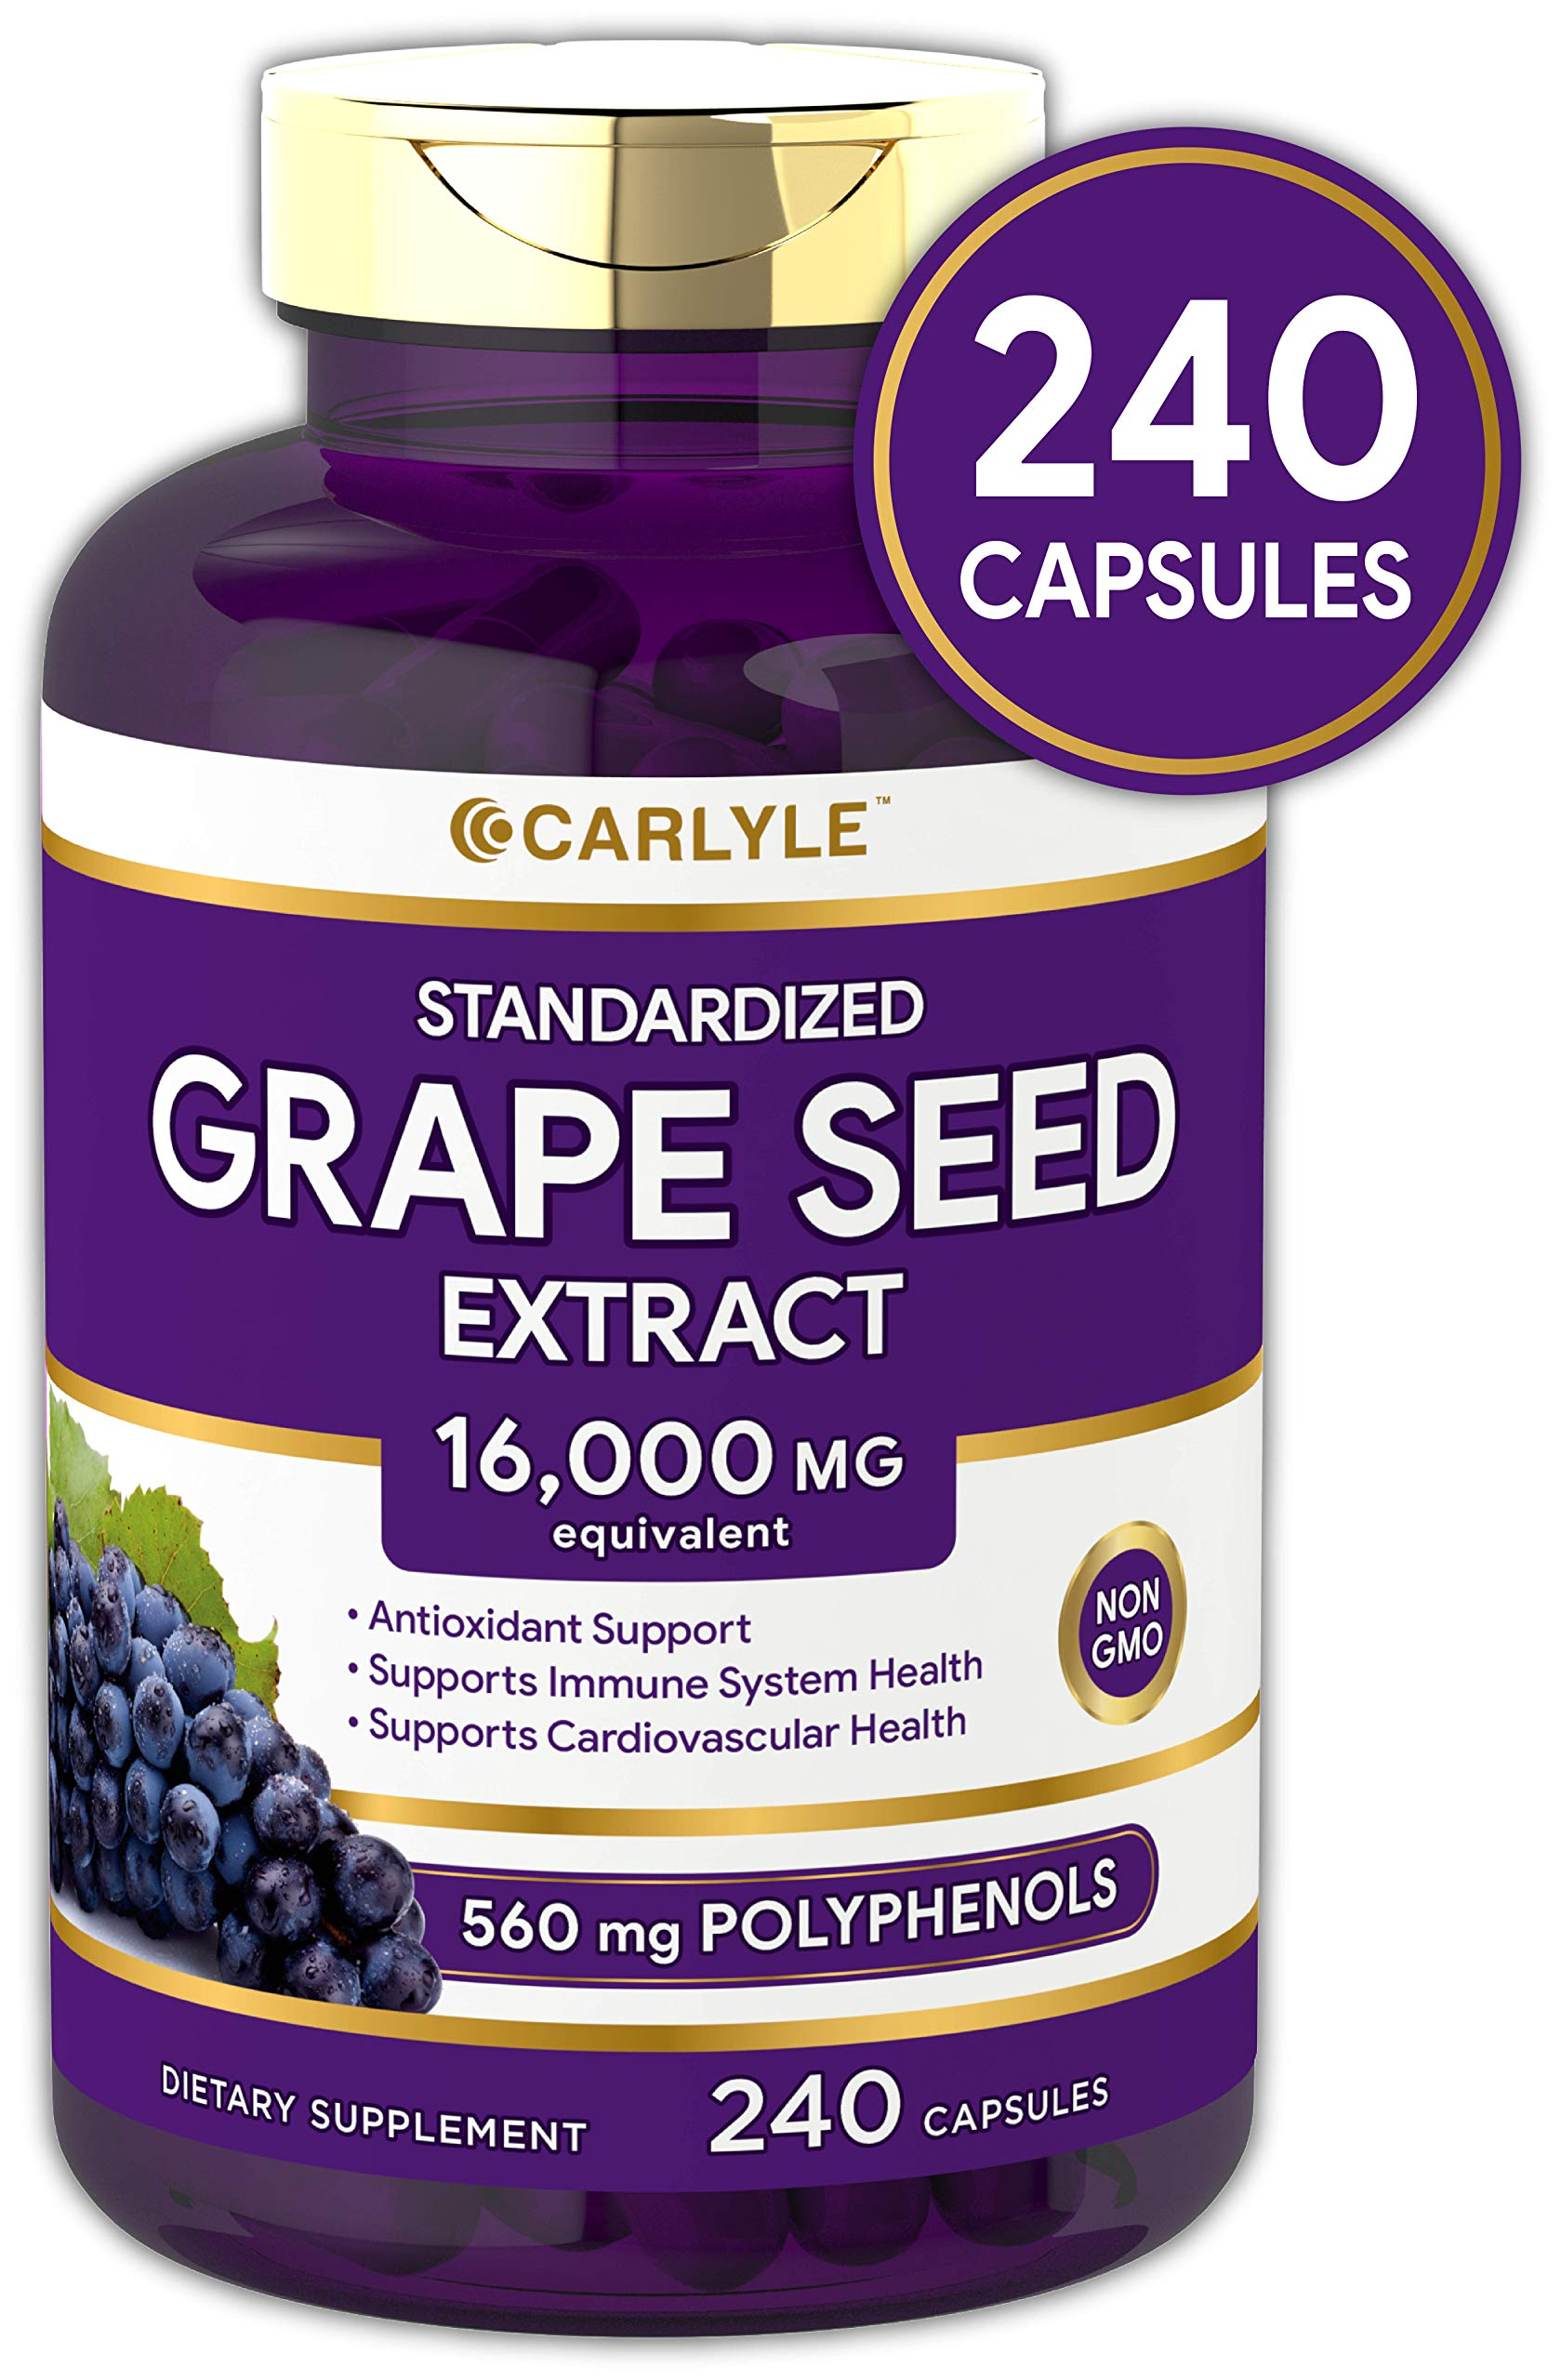 Carlyle Grape Seed Extract 16,000 mg Equivalent 240 Capsules - Maximum Strength Standardized Extract   Non-GMO, Gluten Free